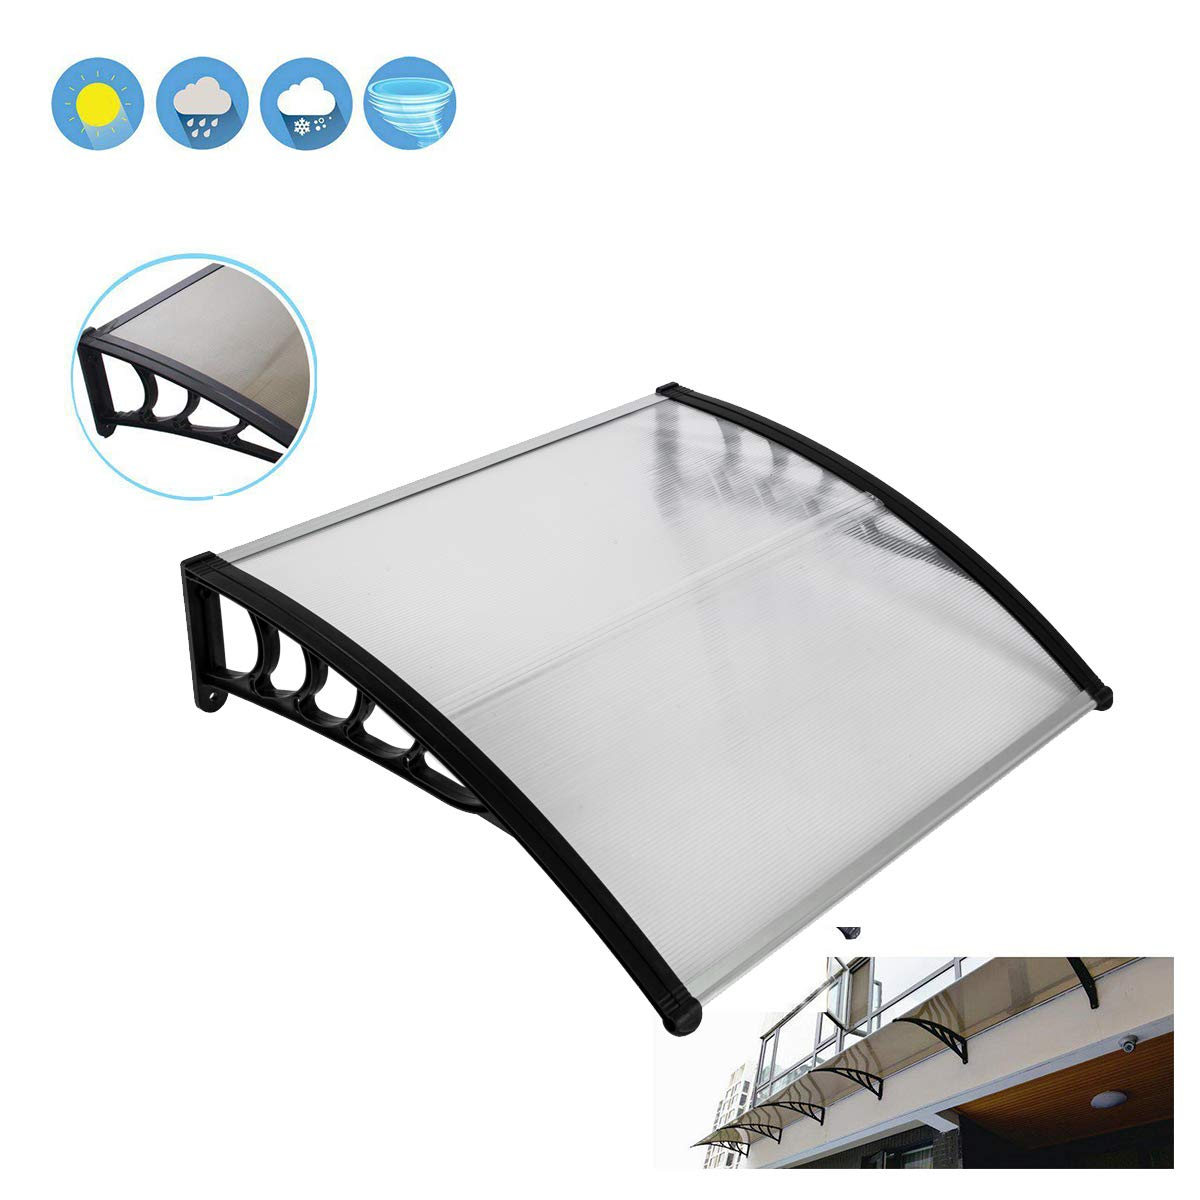 Wegi King Canopy Awning 39×39 Garage Roof,Clear Overhead Window Cover Polycarbonate UV,Rain Snow Protection Hollow Sheet for Patio Lawn Garden House Greenhouse Front Door Outdoor Black Holder